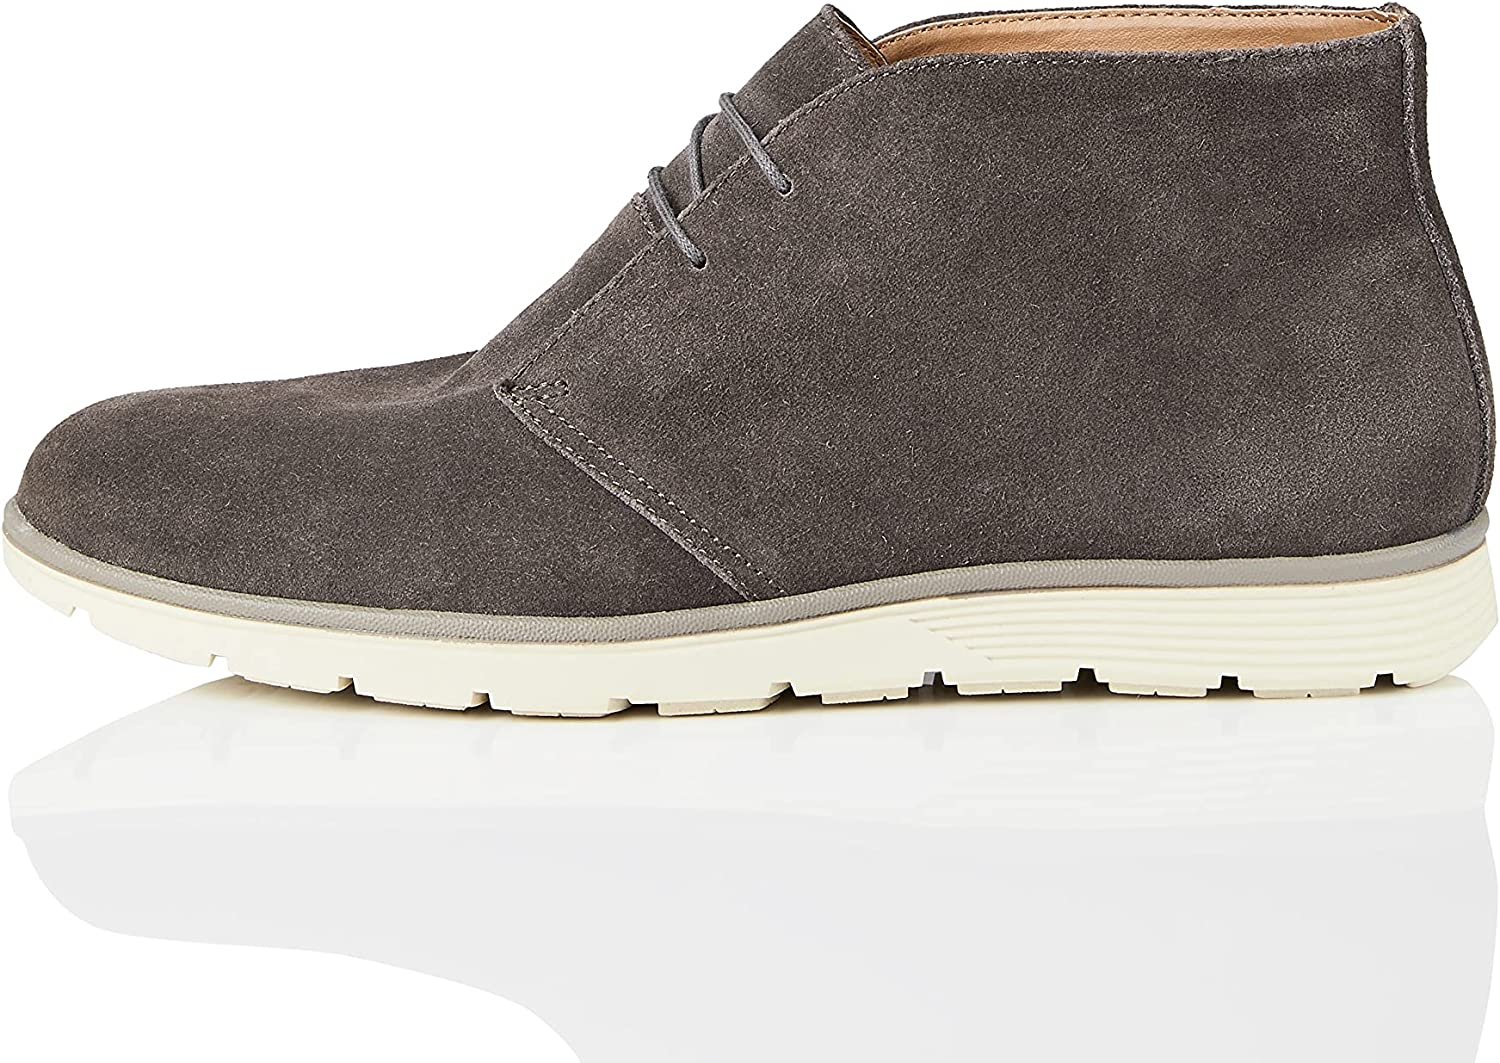 find. Men's Chukka Ankle Ranking Fashionable TOP18 Boots